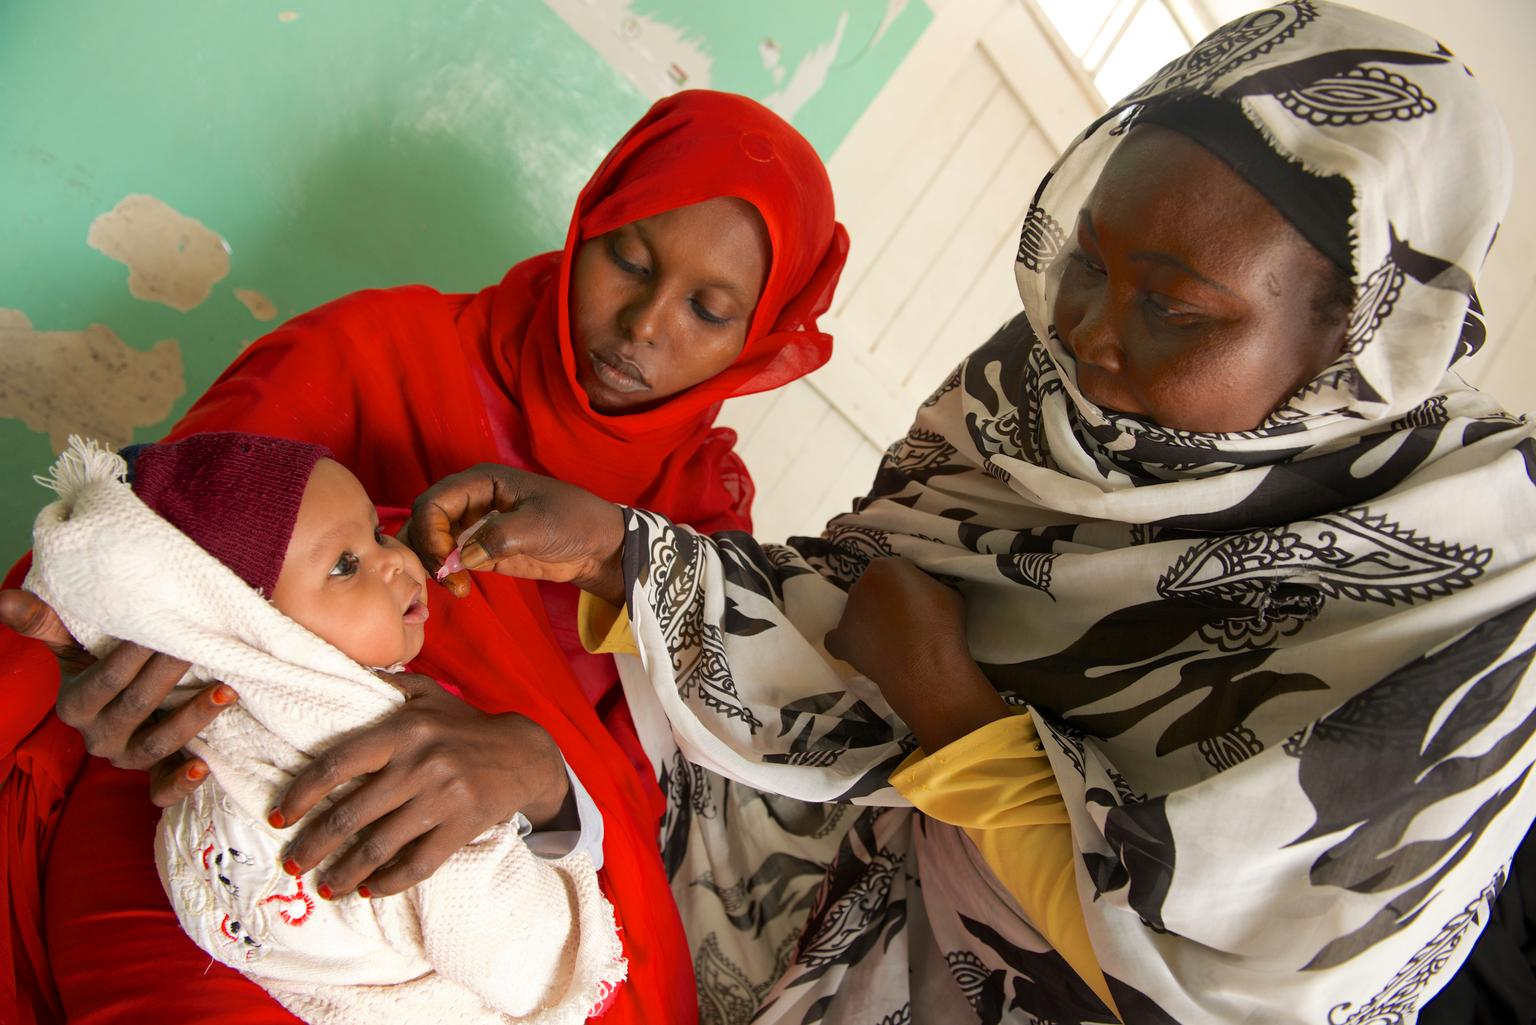 While a woman holds her child in her lap, a female health worker vaccinates the infant against polio at Qarar Ibn-e-Al Khatab Basic Health Centre in Port Sudan